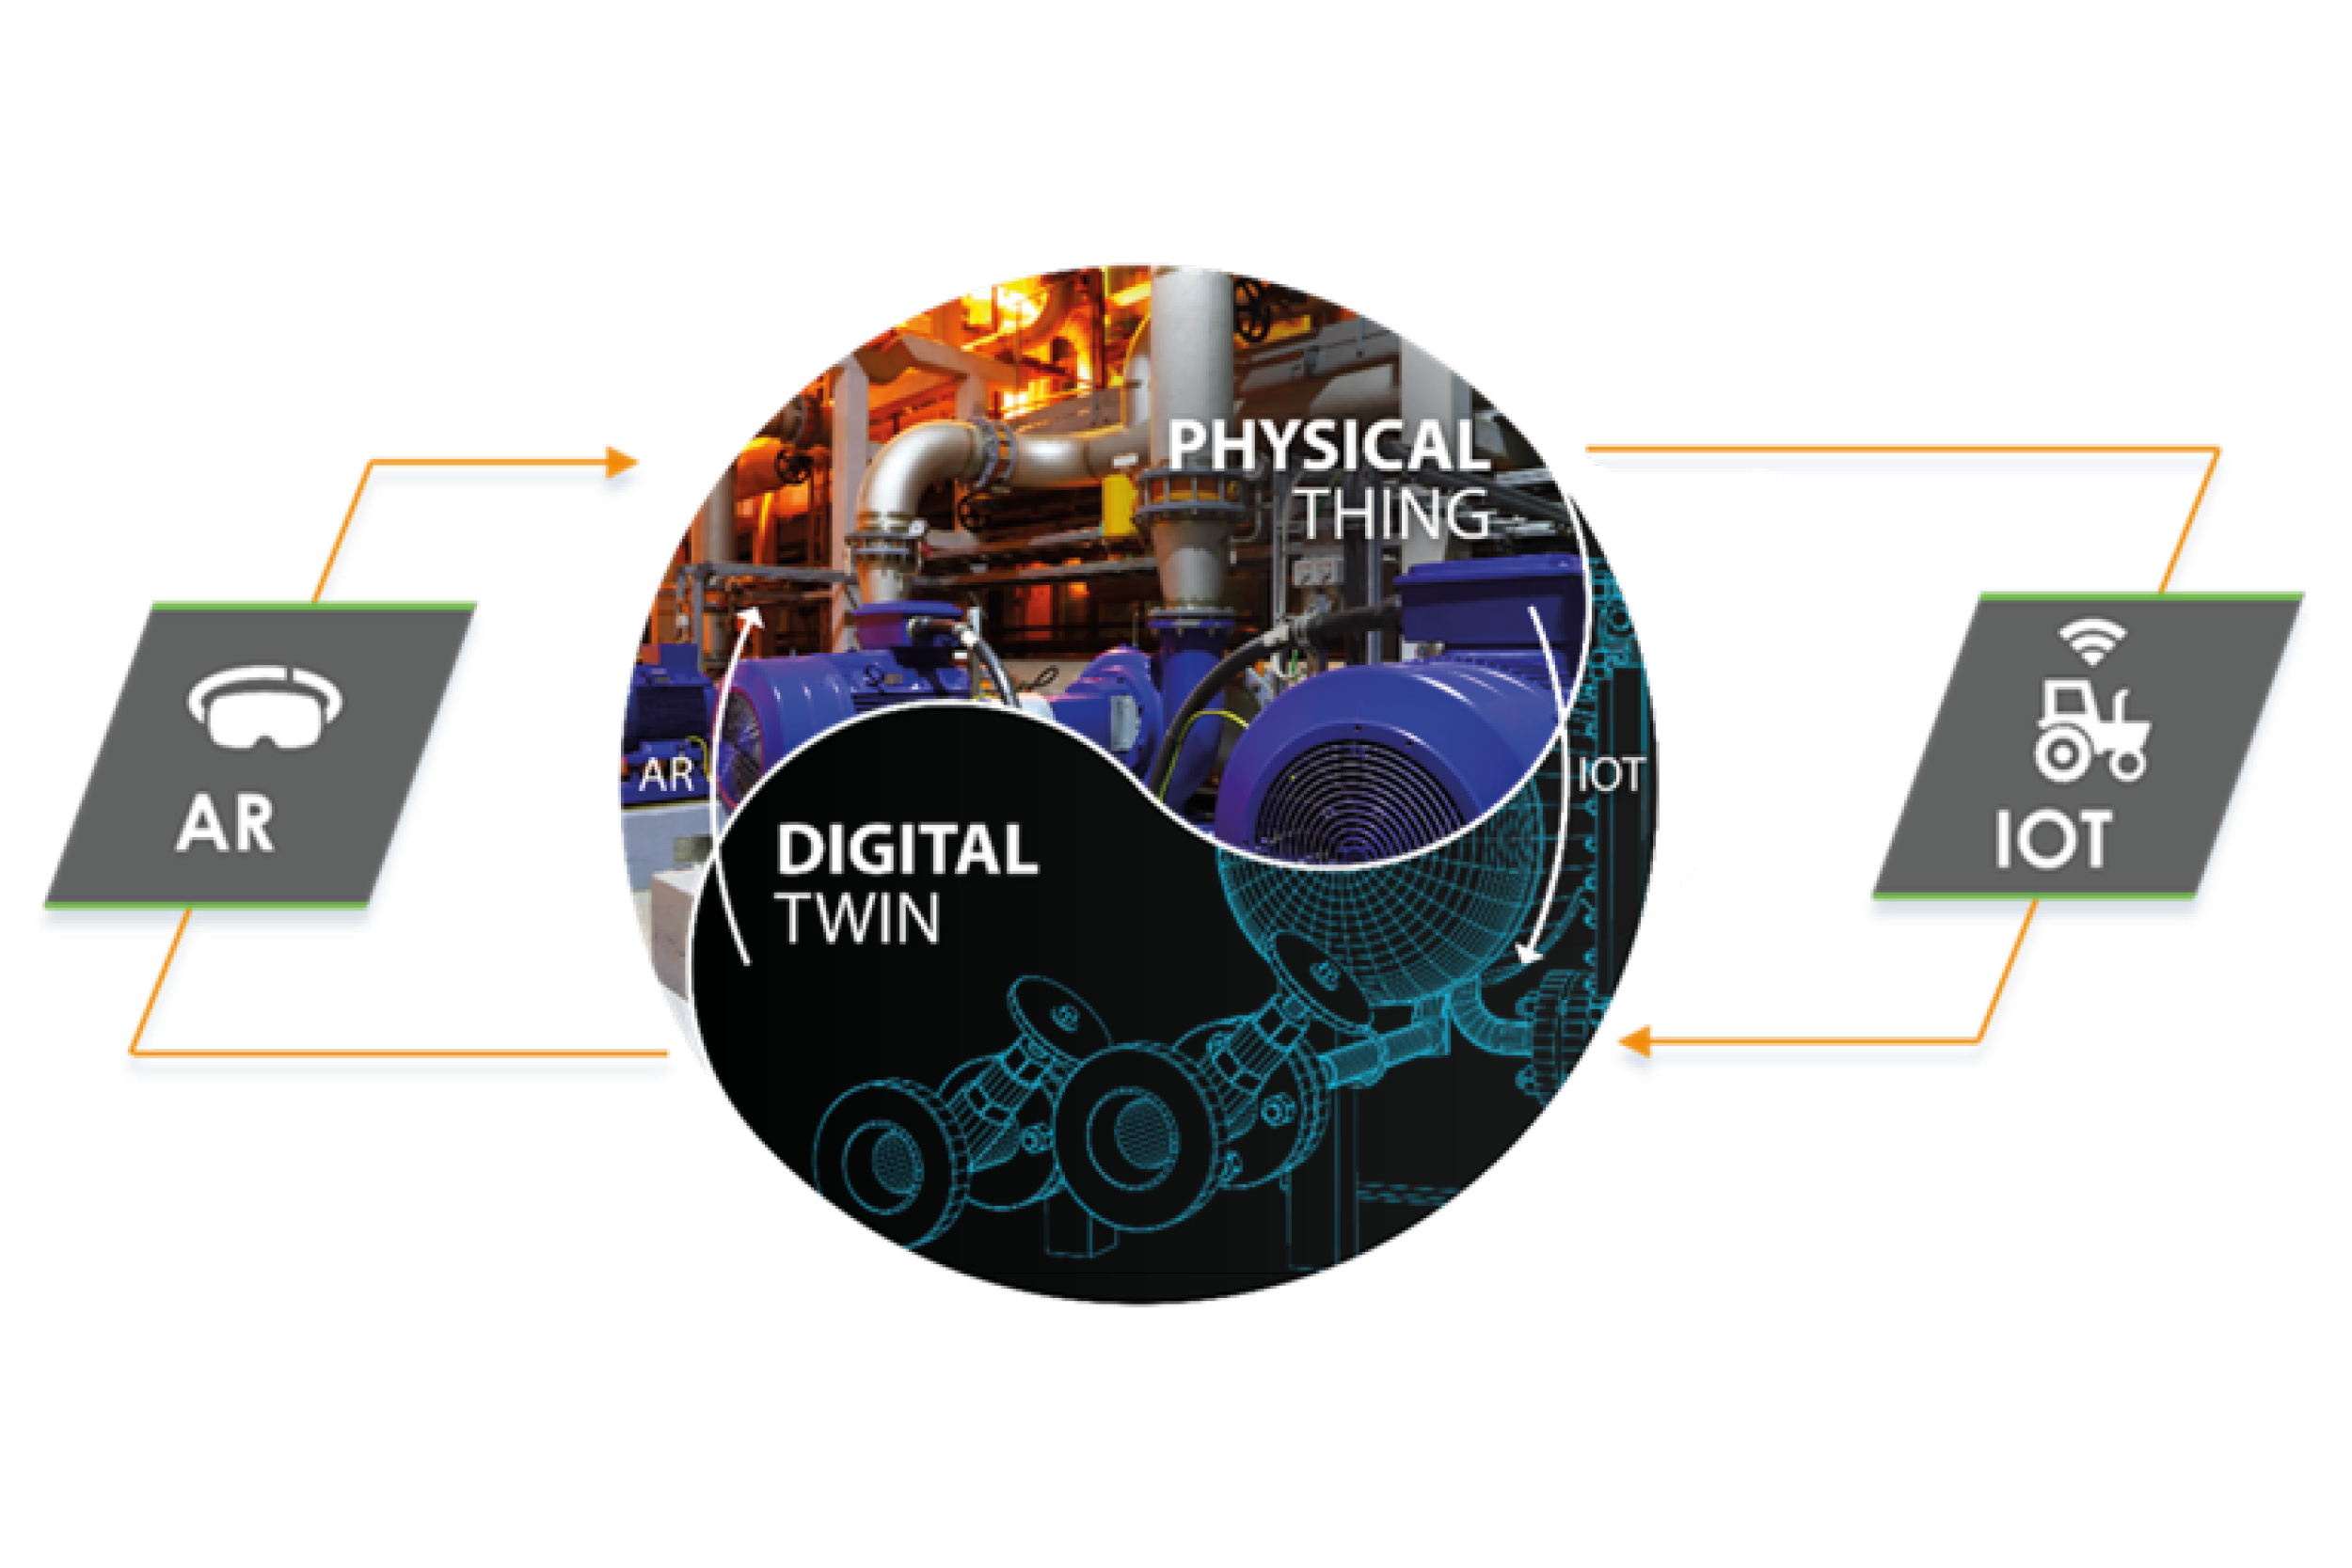 PTC Physical Thing Digital Twin